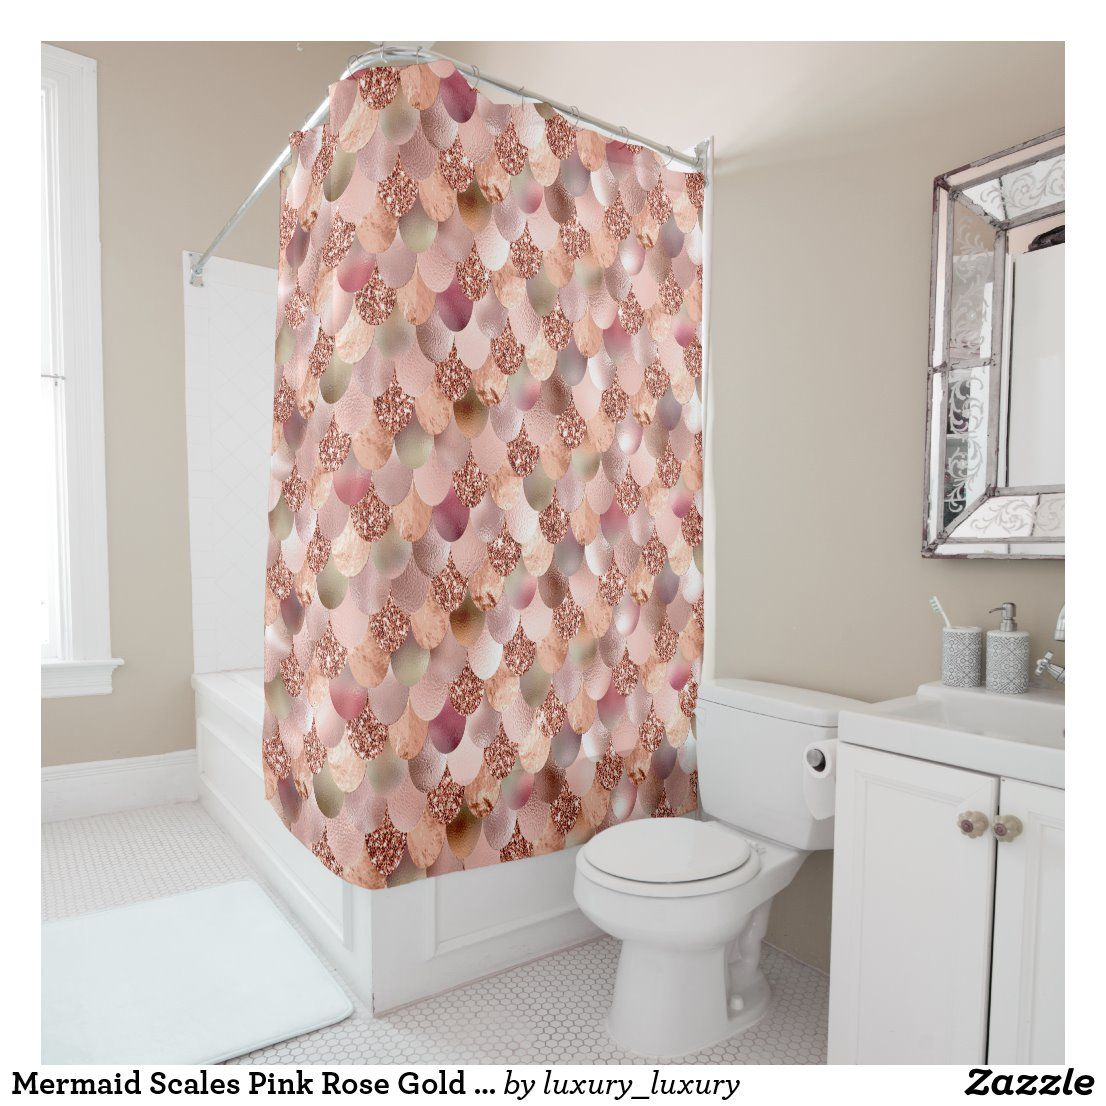 Mermaid Scales Pink Rose Gold Glitter Spark Copper Shower Curtain Zazzle Com In 2020 Rose Gold Glitter Shower Curtain Mermaid Scales